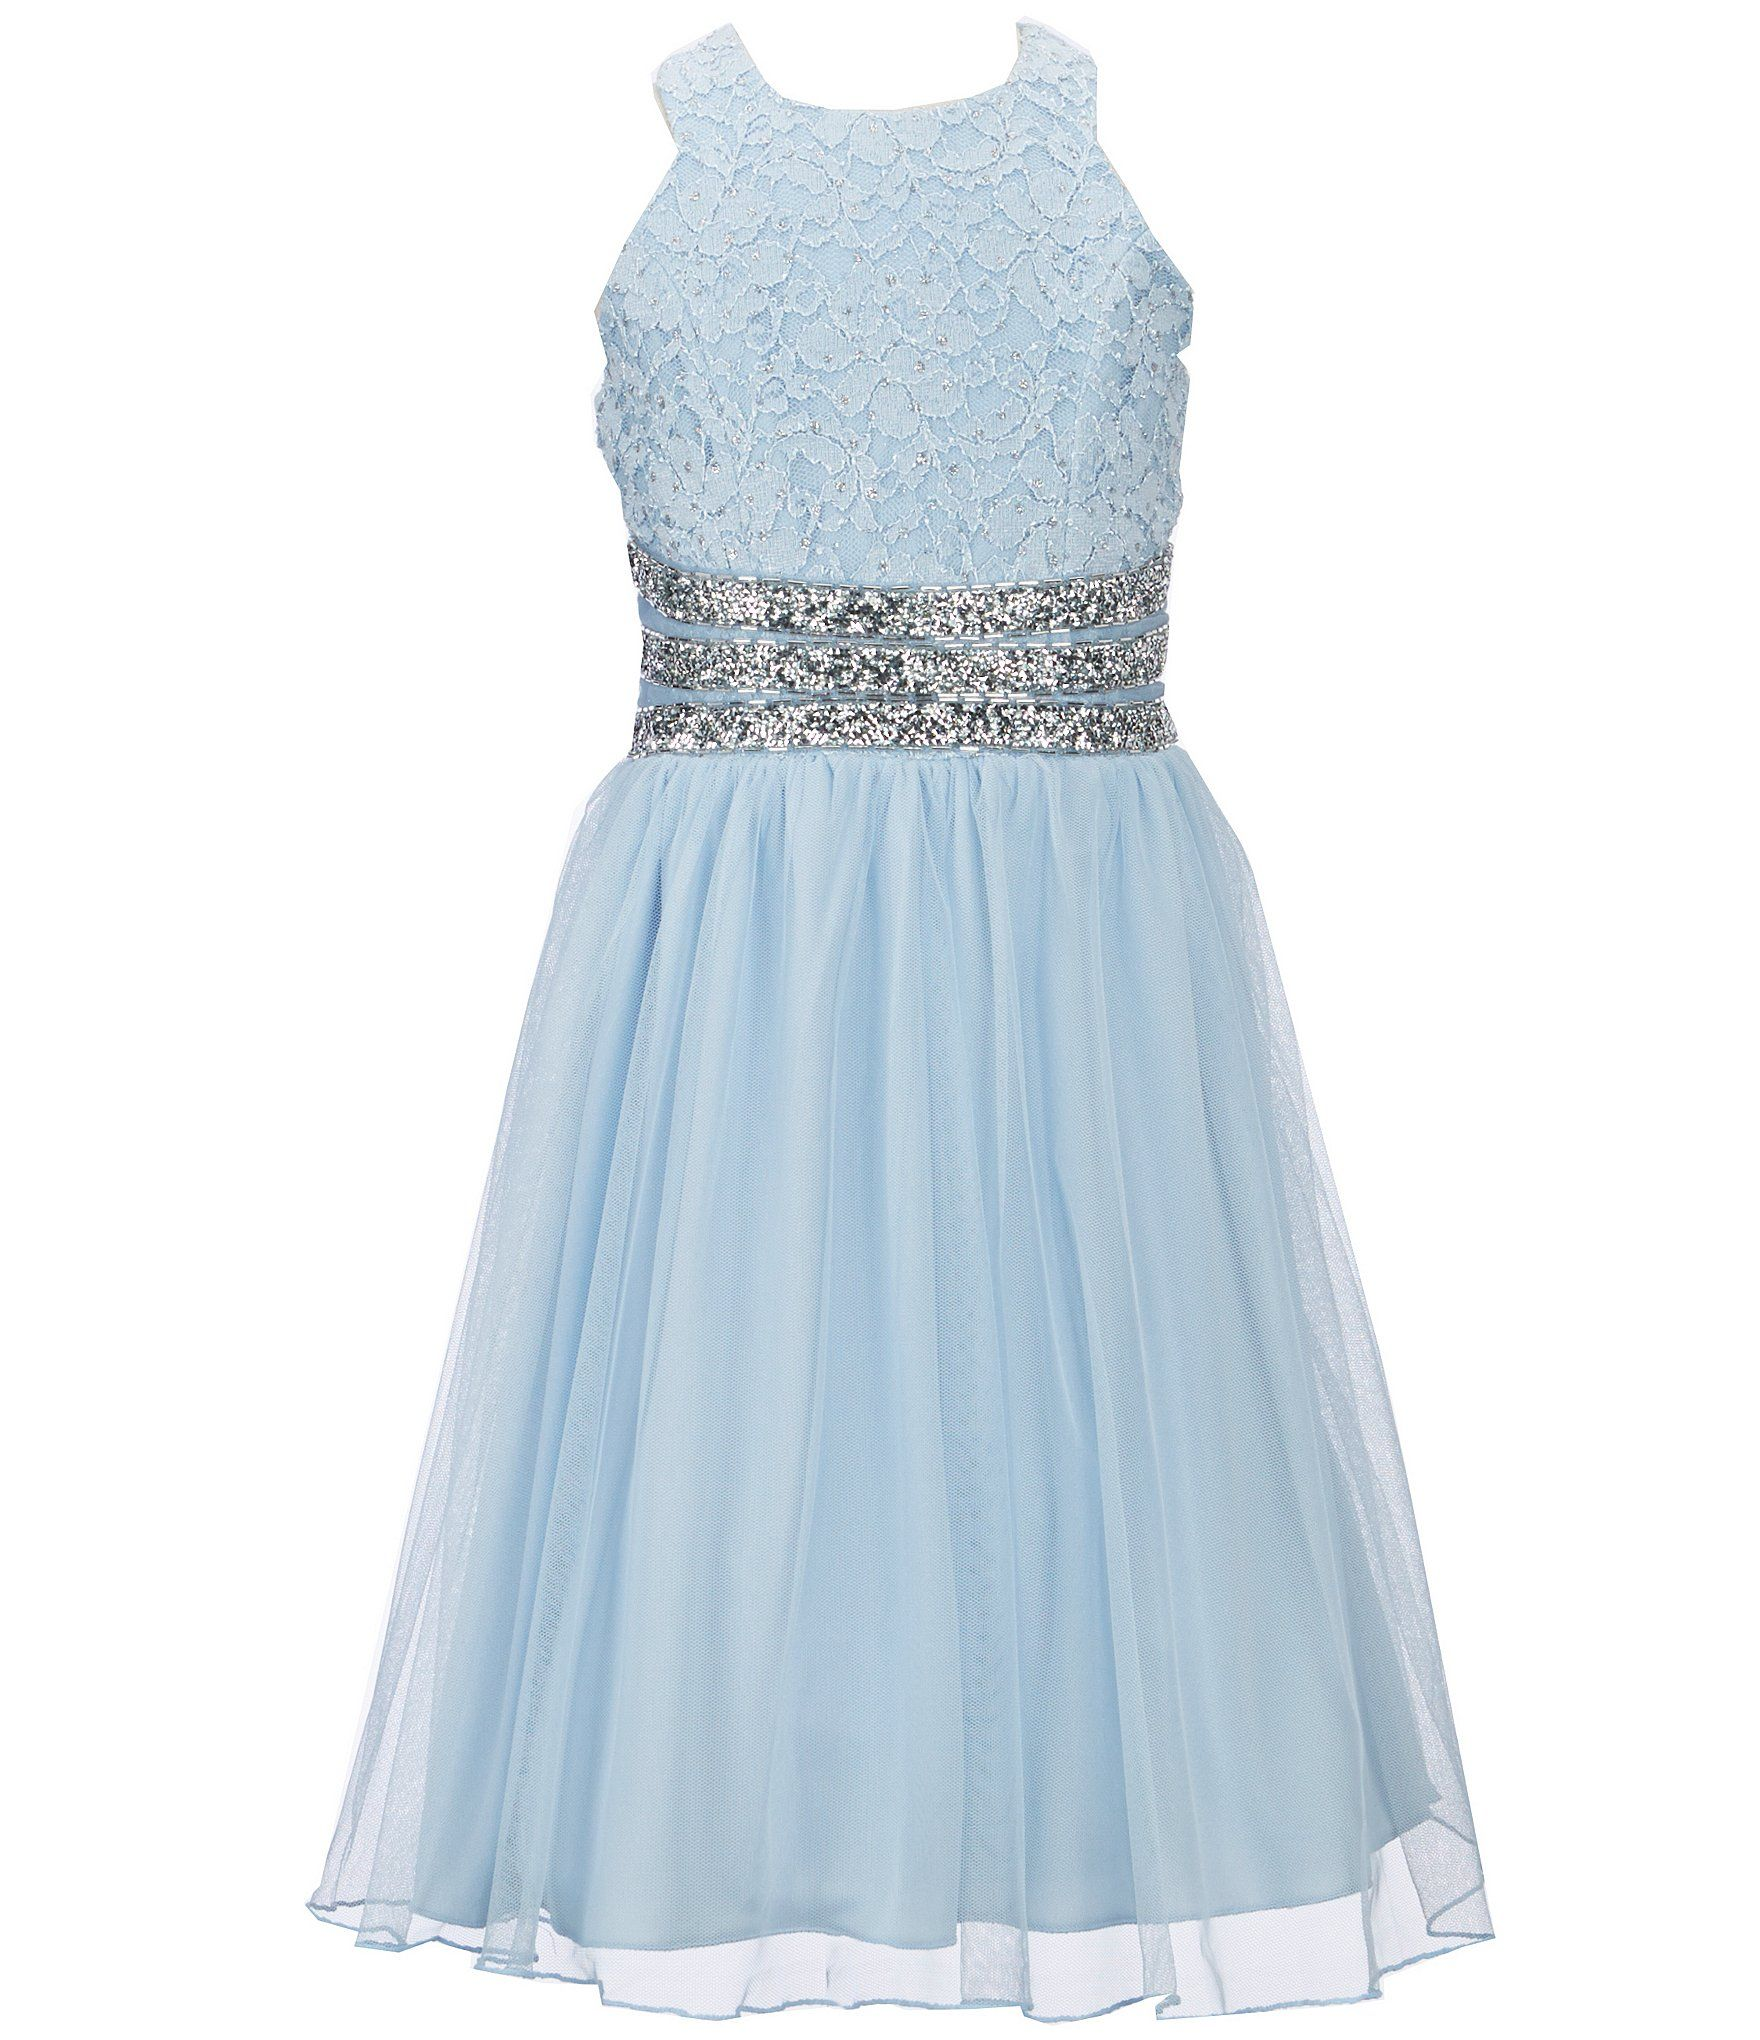 Xtraordinary big girls lacetulle fitandflare dress wedding